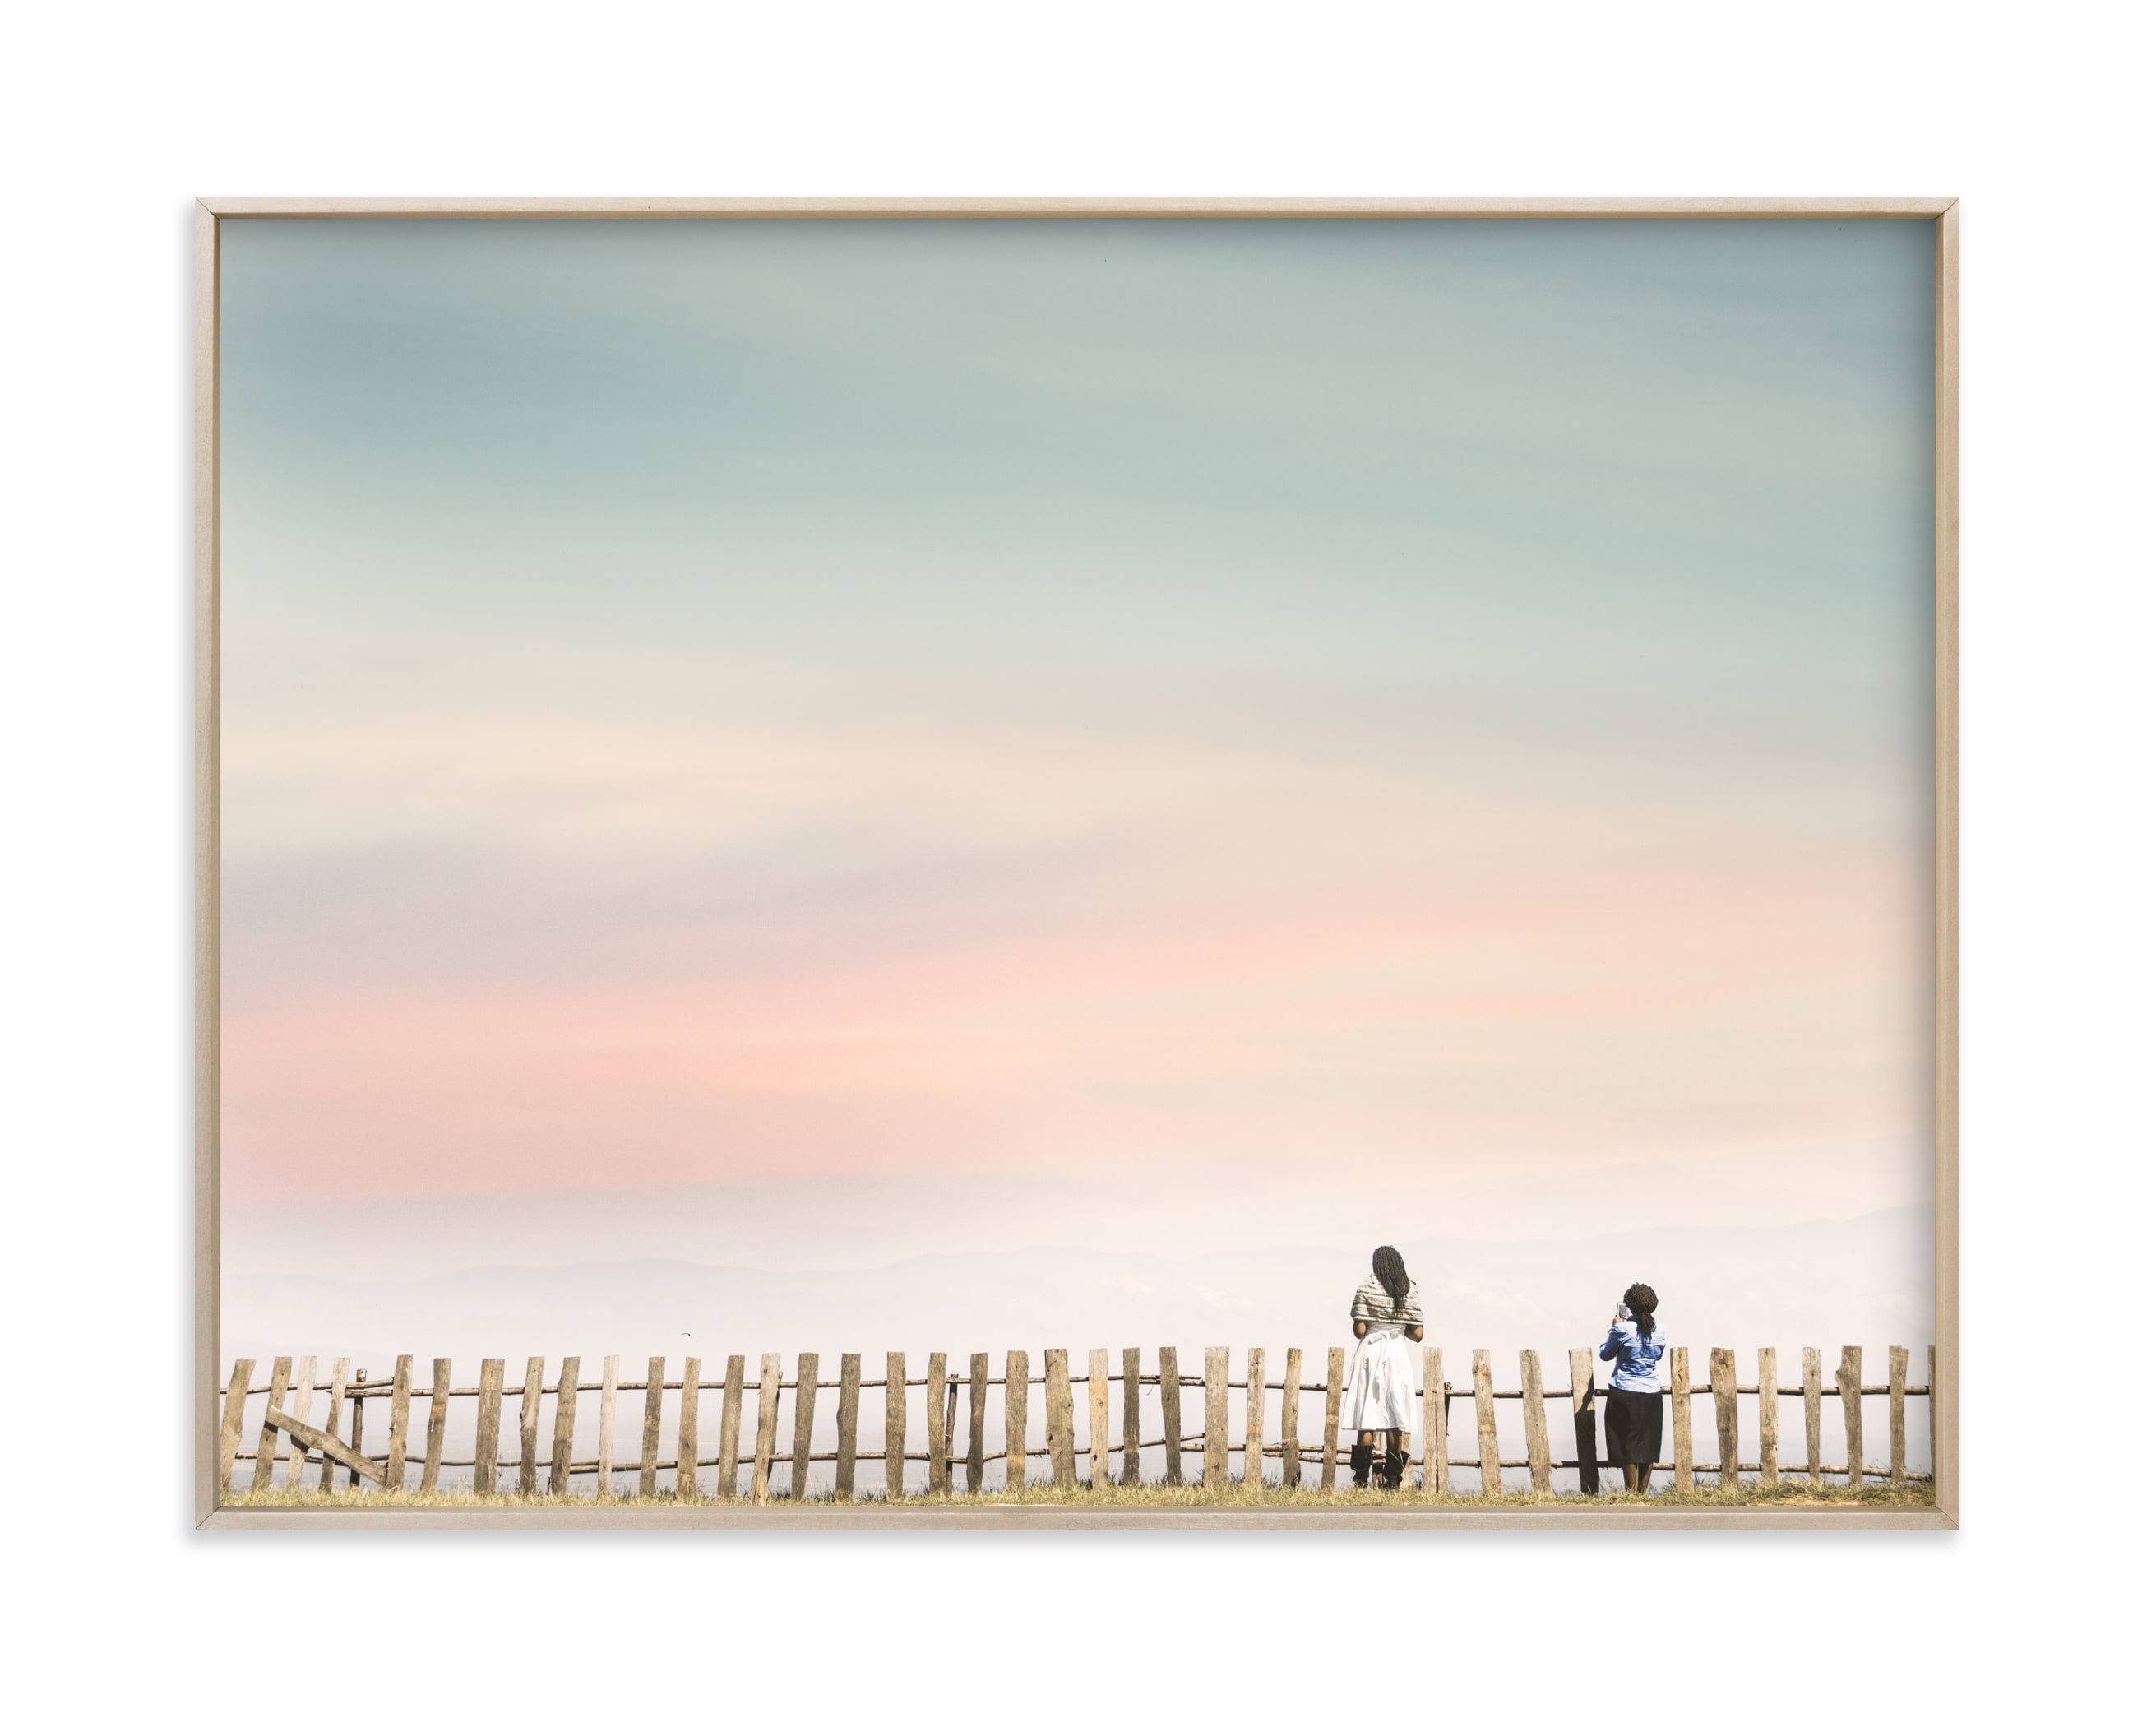 Balcony of Dreams Wall Art Print